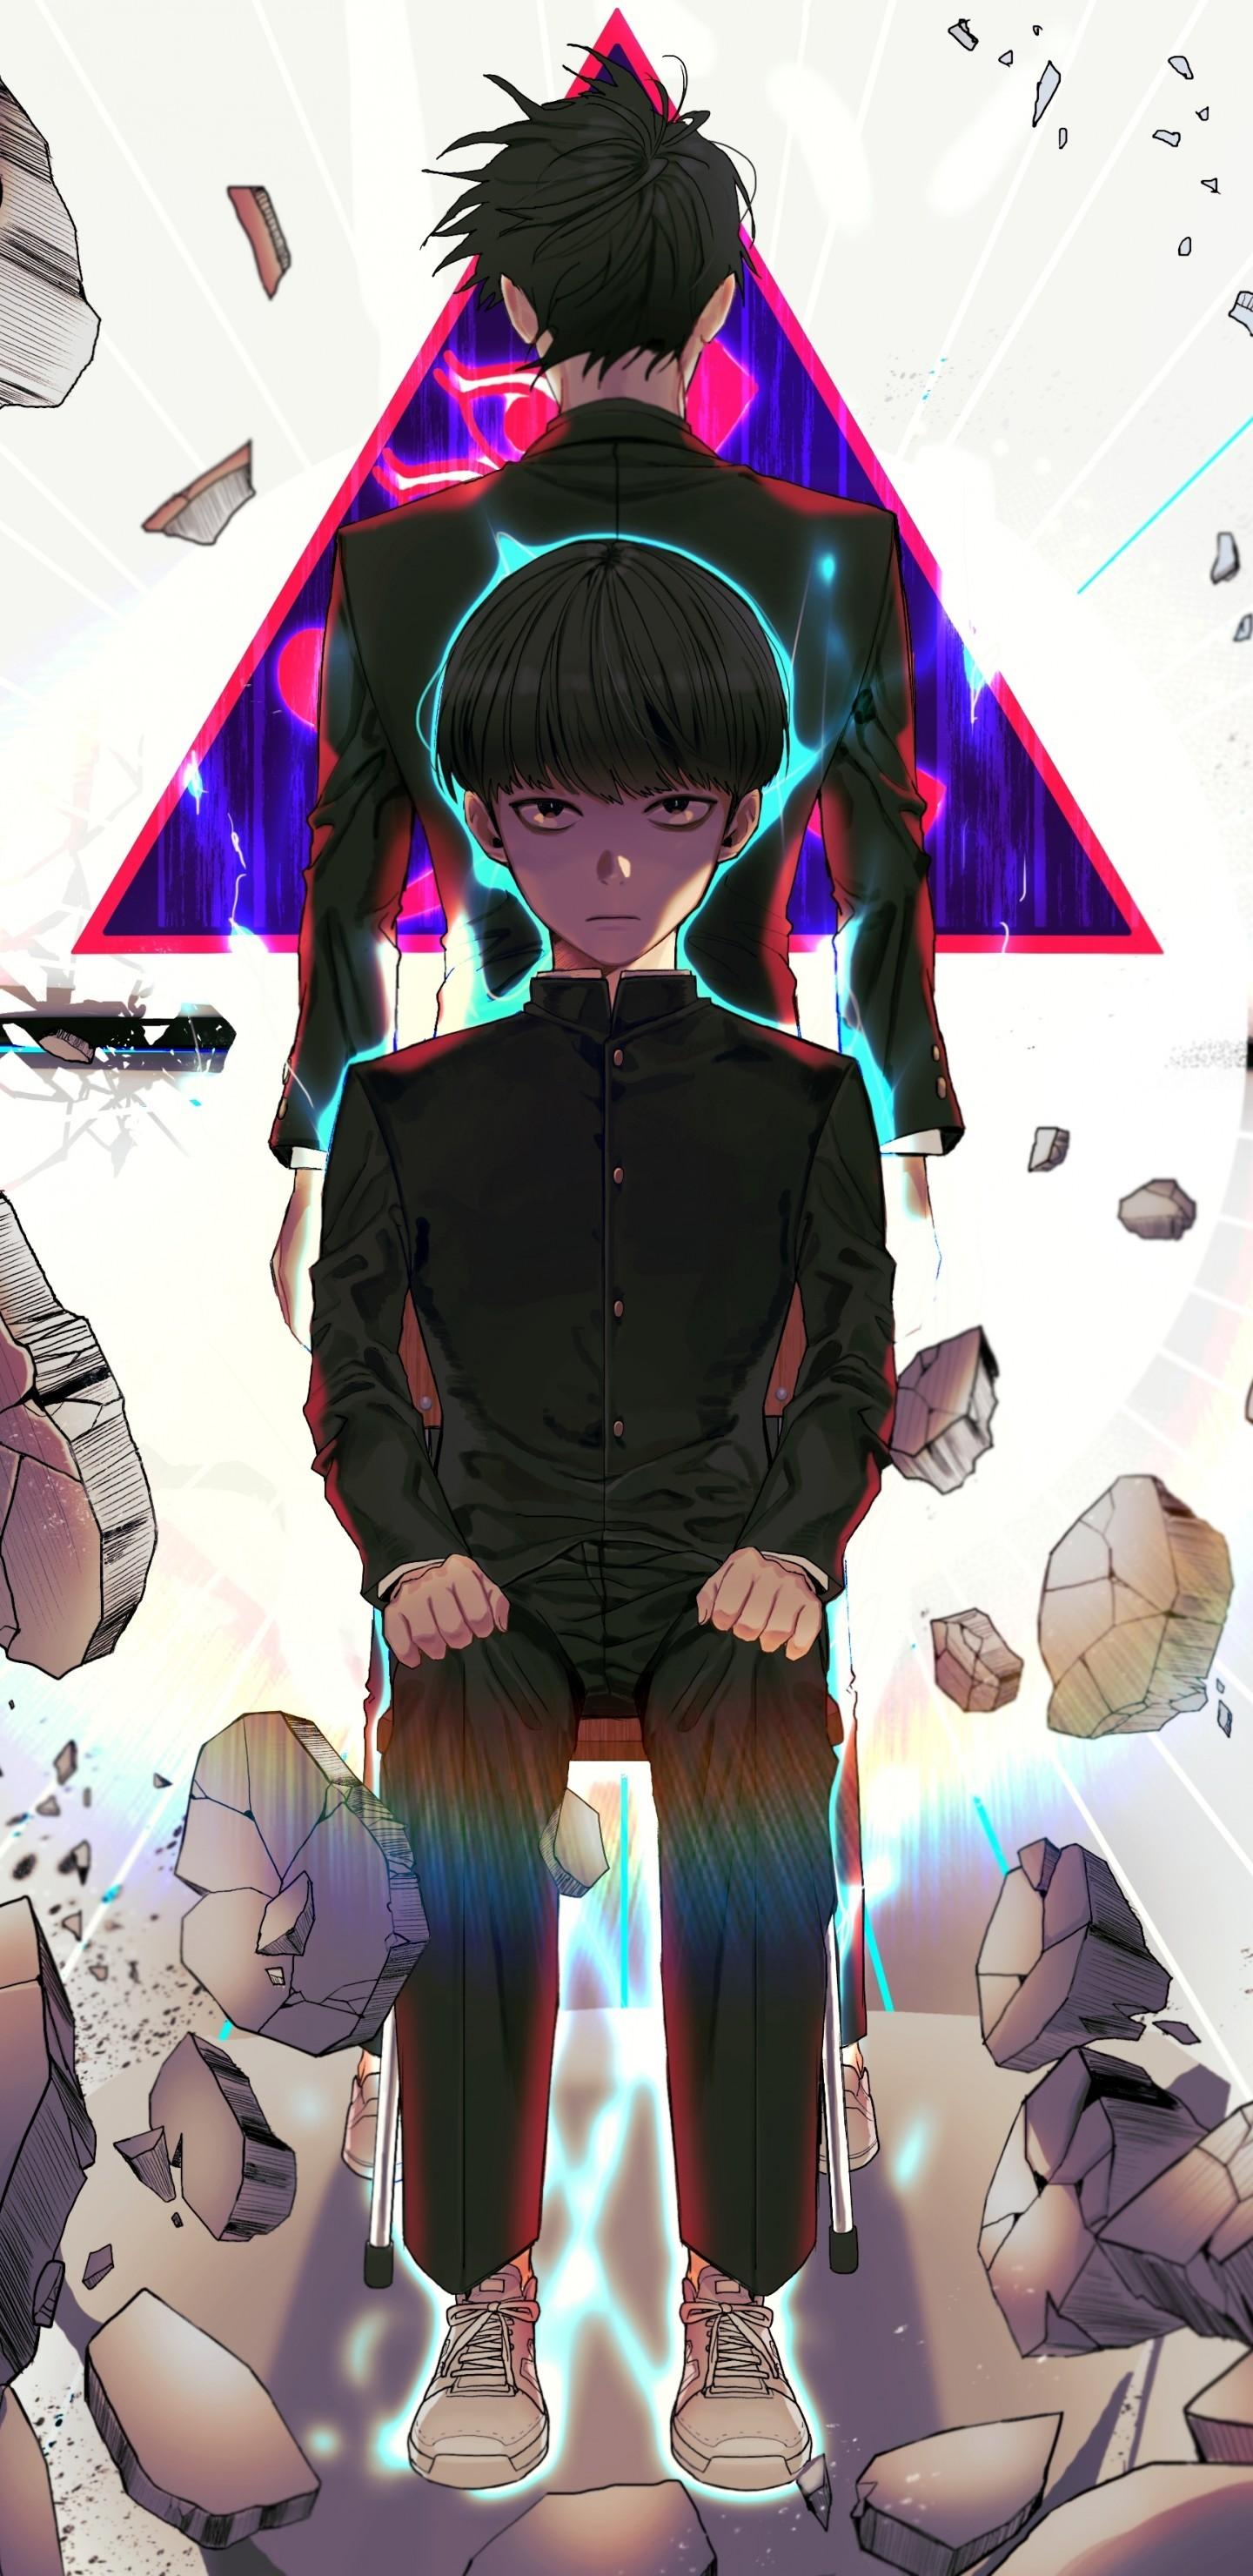 Download 1440x2960 Kageyama Shigeo, Mob Psycho 100, Stones